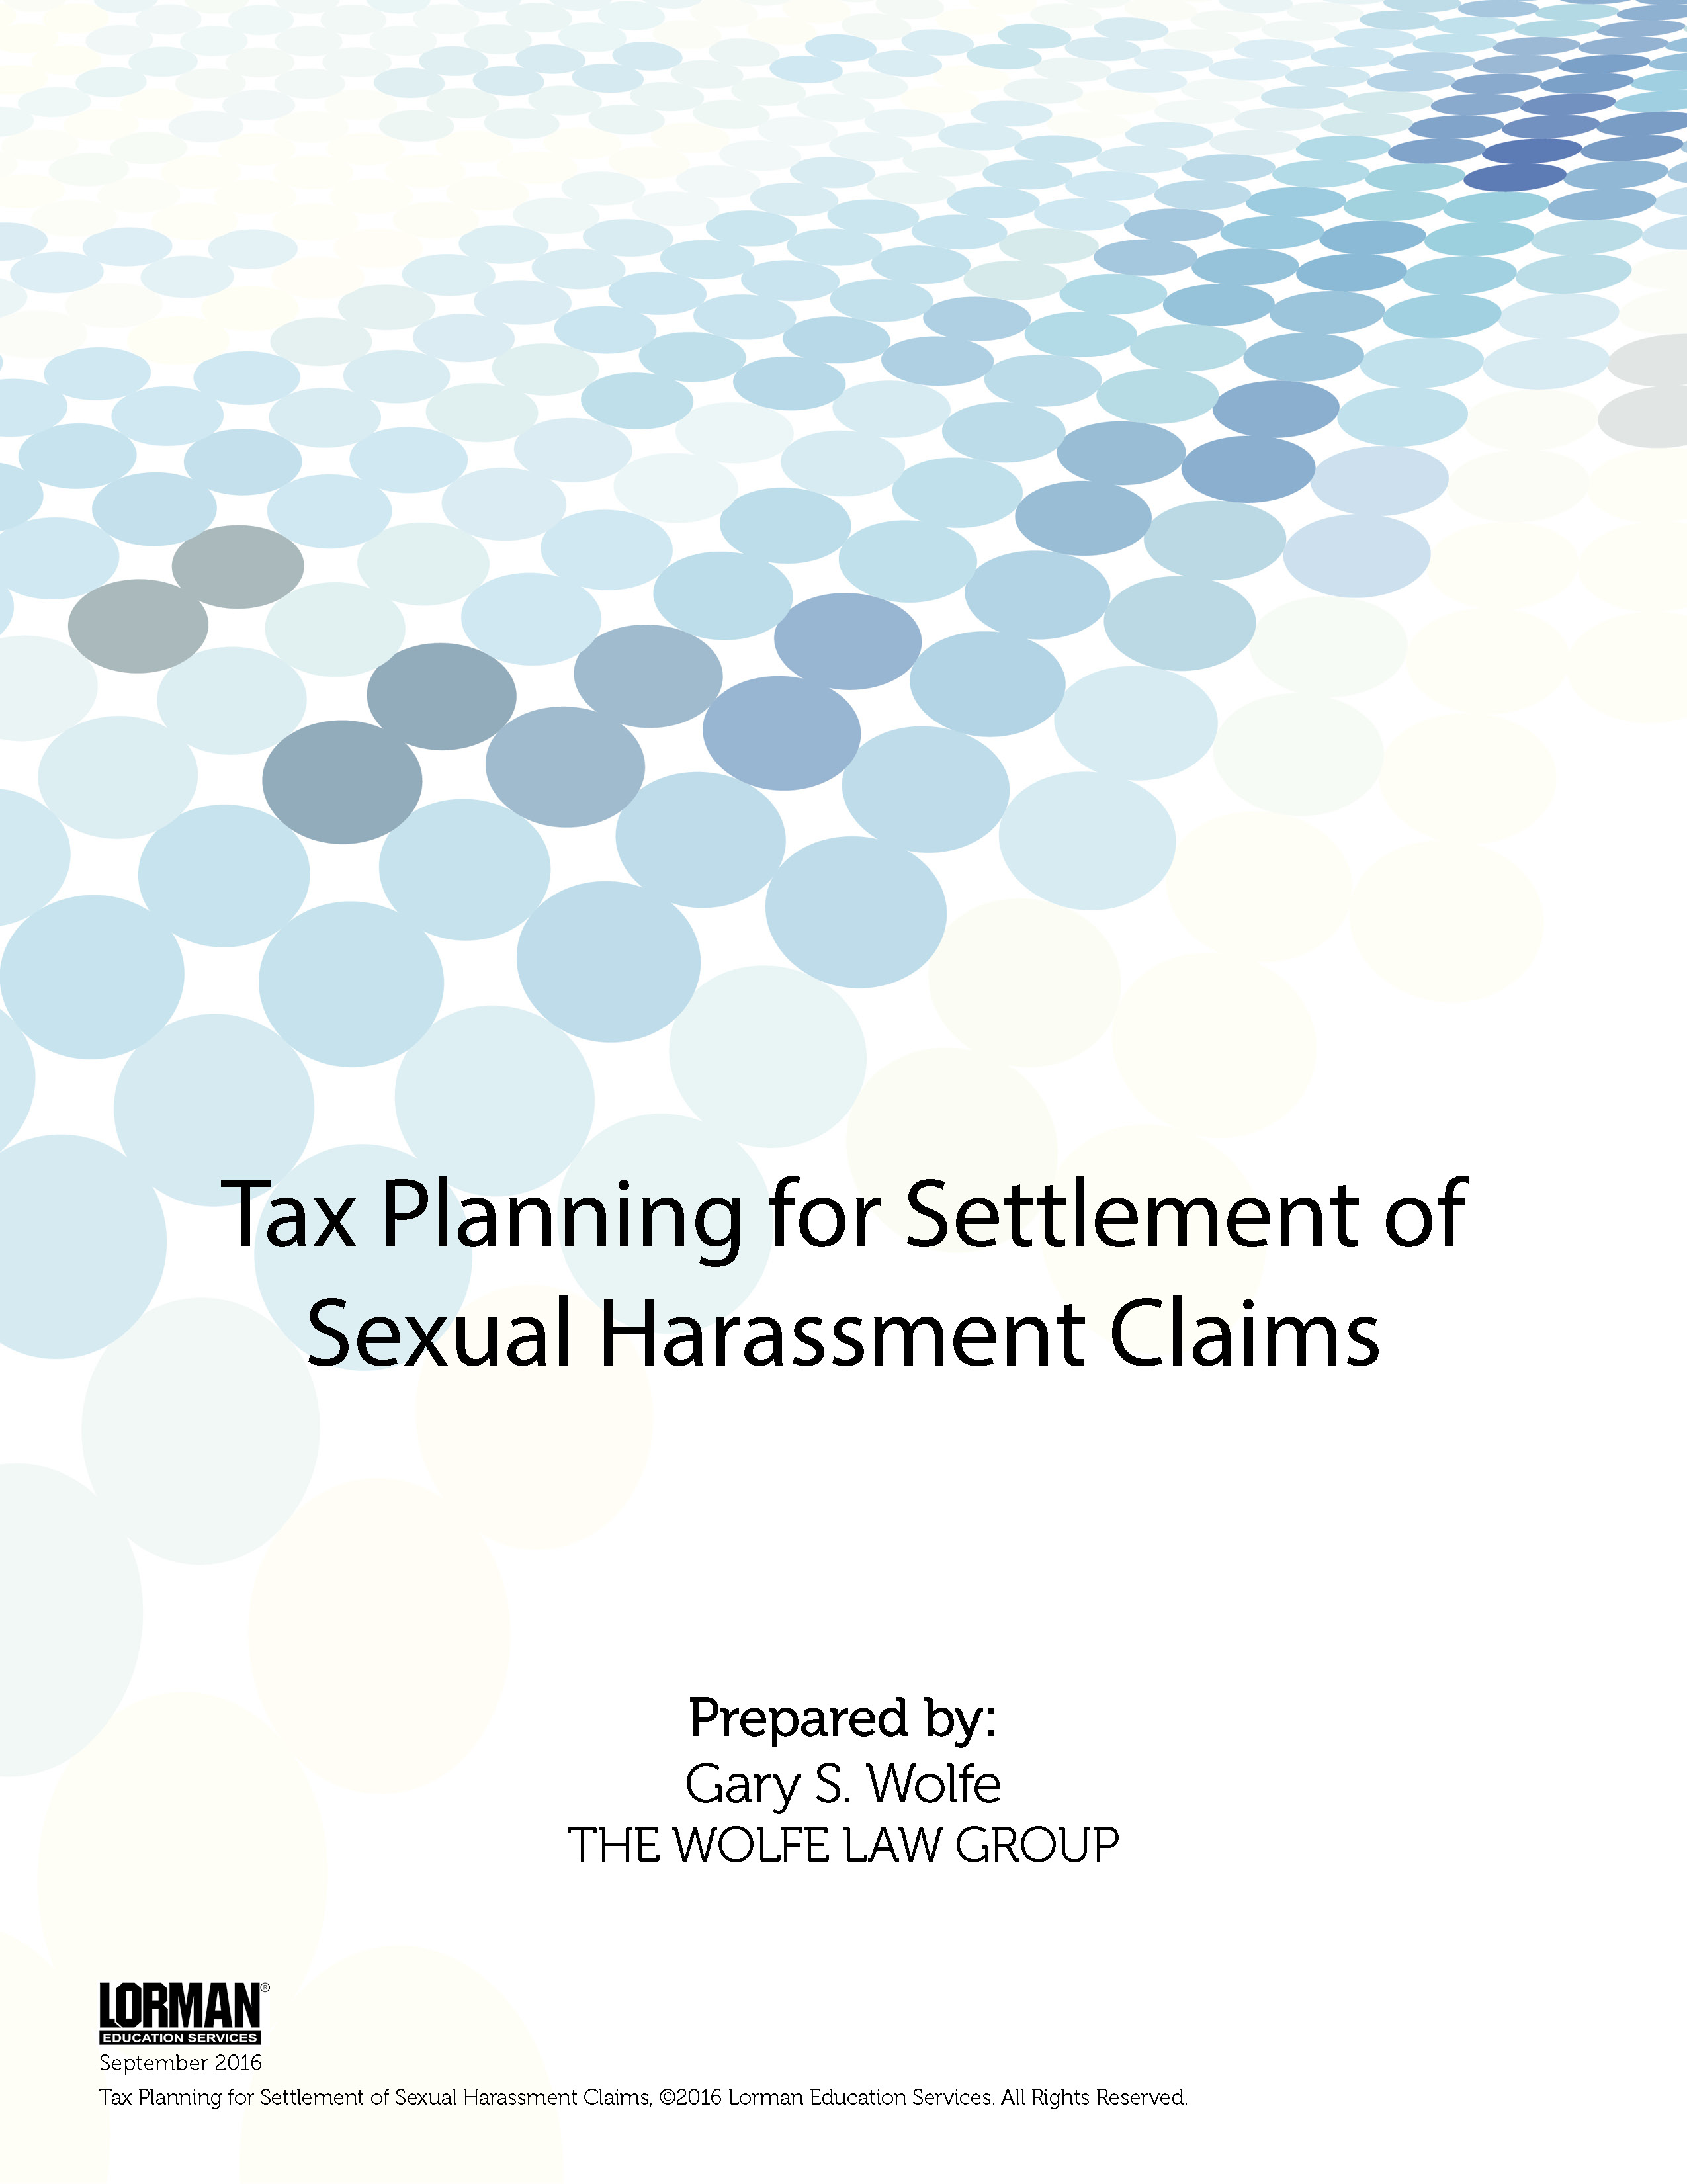 Tax Planning for Settlement of Sexual Harassment Claims